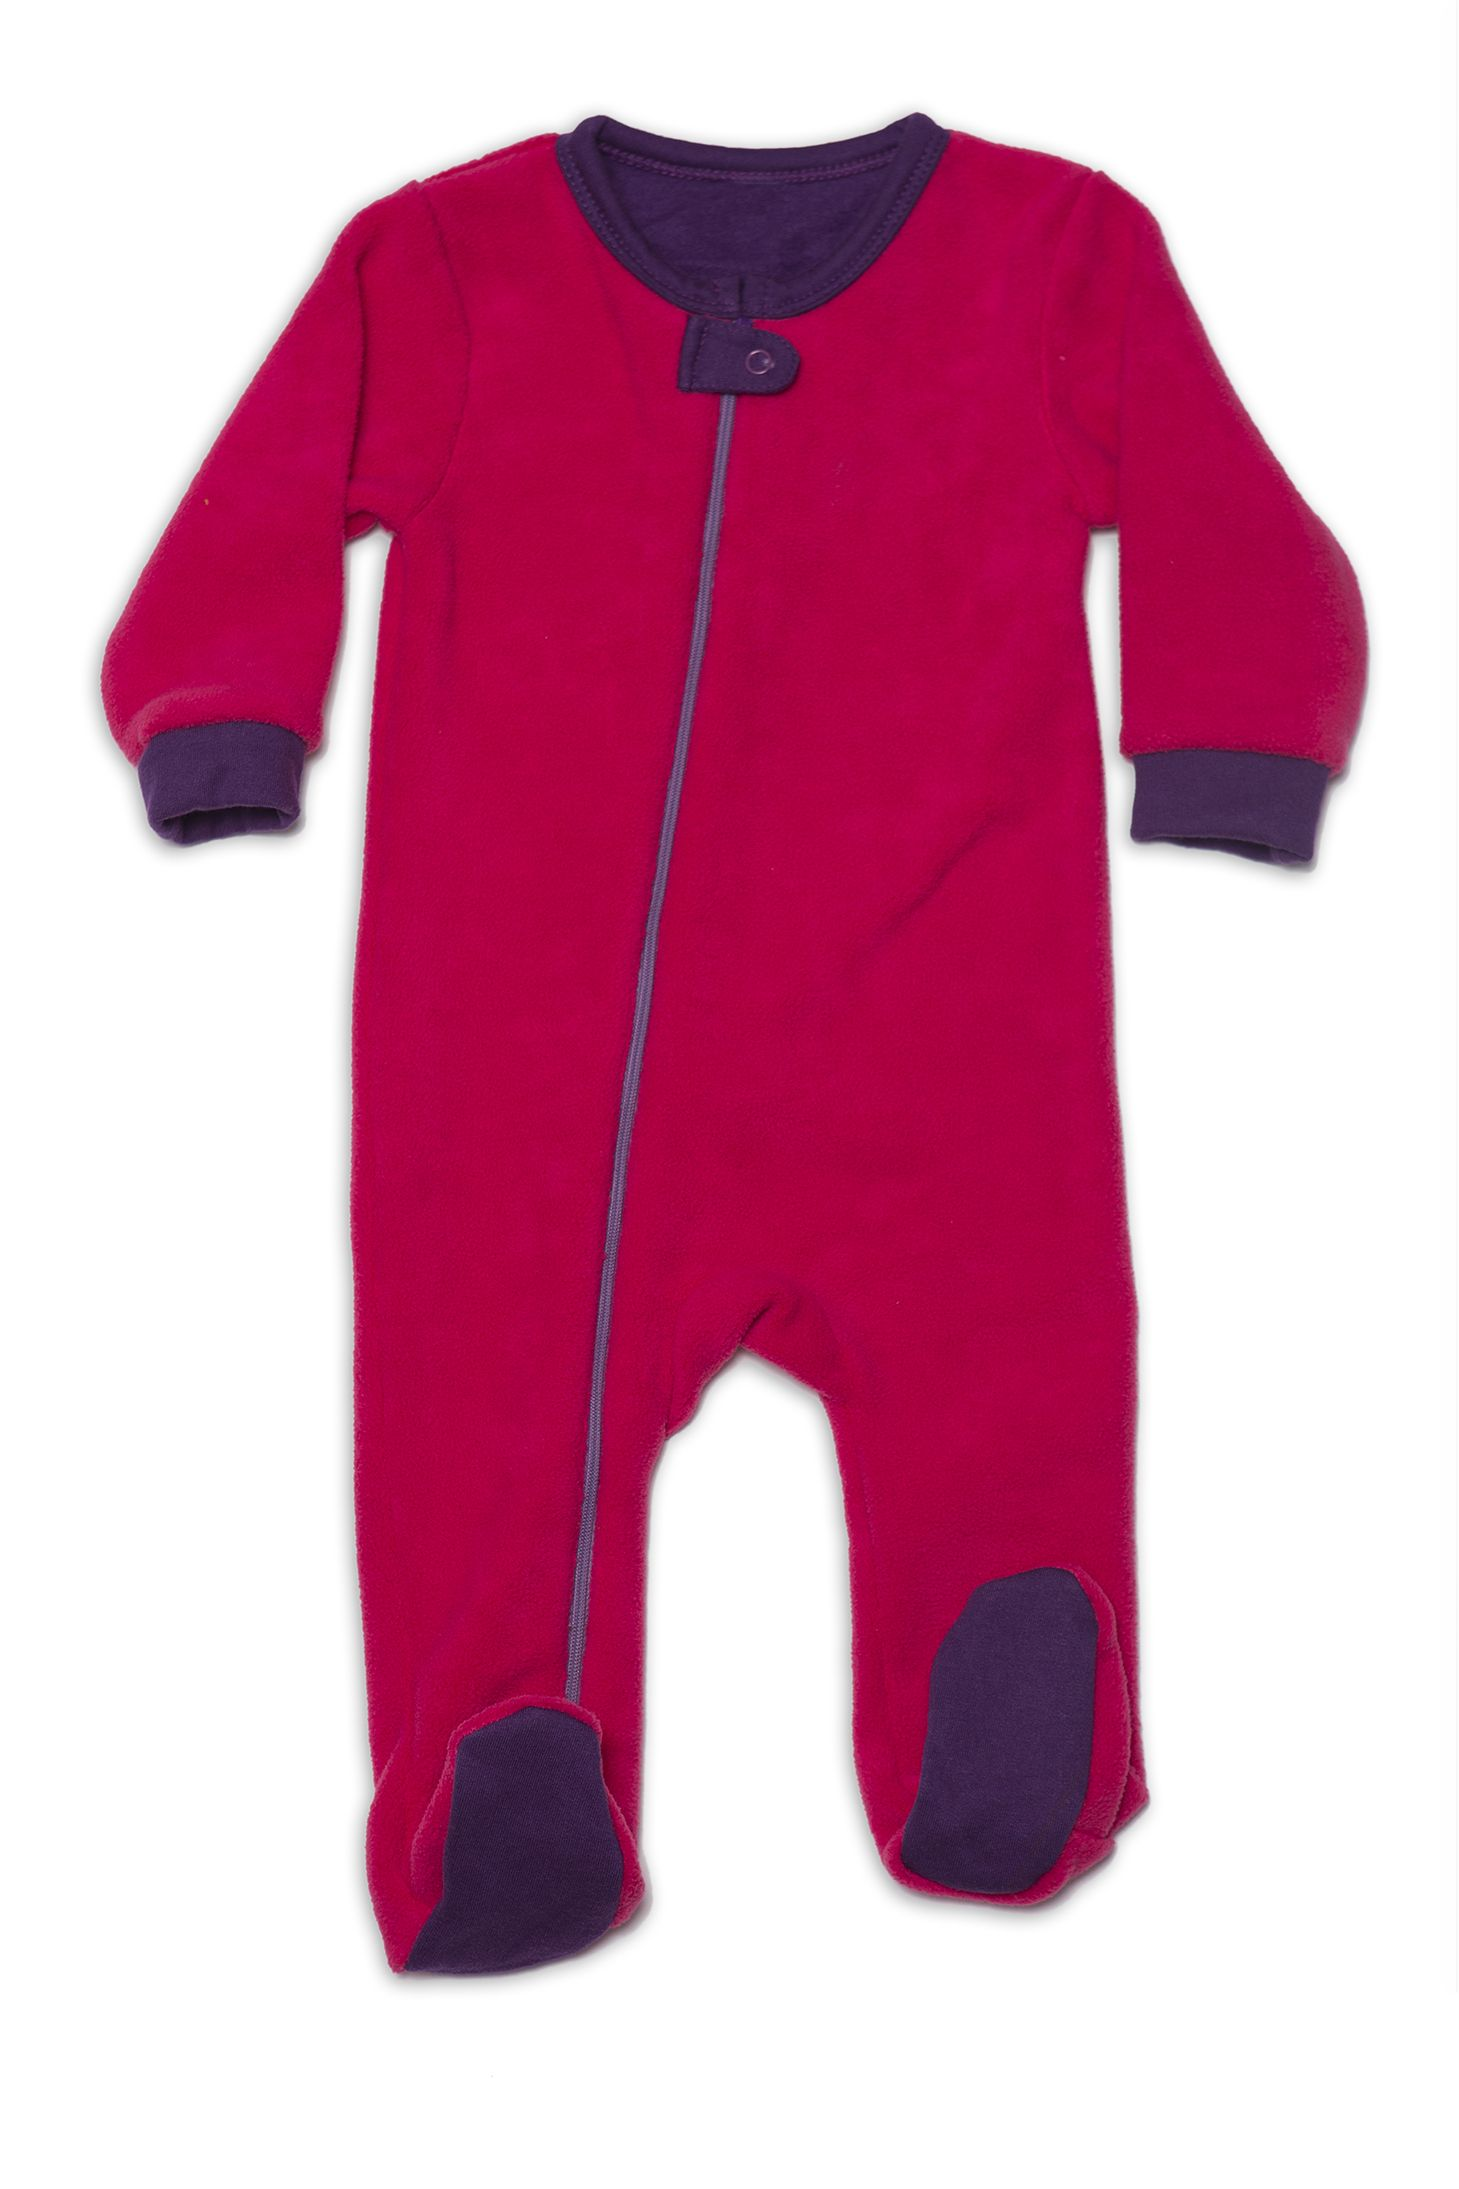 Nino Bambino's Super Soft, Anti Pill, Micro Polar Fleece Body is 100% Polyester Full Sleeve Romper. This product is best suitable for little babies and kids who can be covered in cold weather, keeping them comfortable and warm. - See more at: http://www.ninobambino.in/Romper/Side-Zipper-Romper-id-801535.html#sthash.yMZ30J8k.dpuf